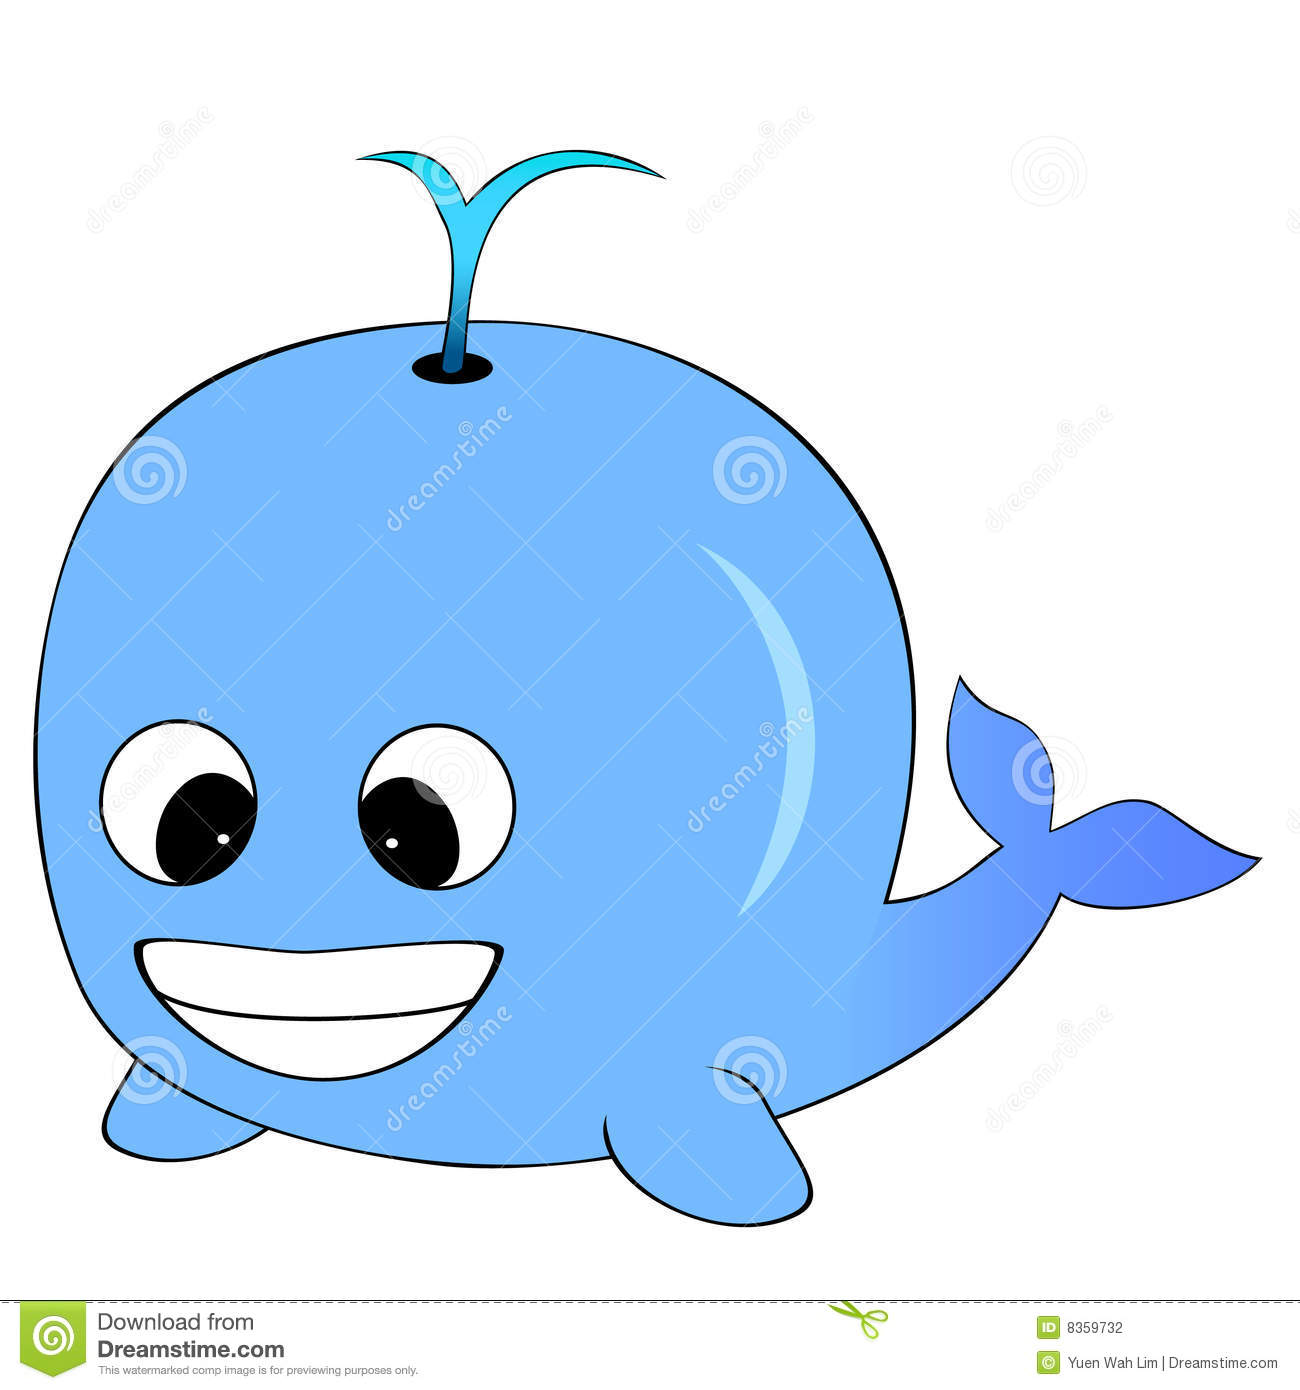 Cute Looking Blue Cartoon Whale Spurting Water On It's back.